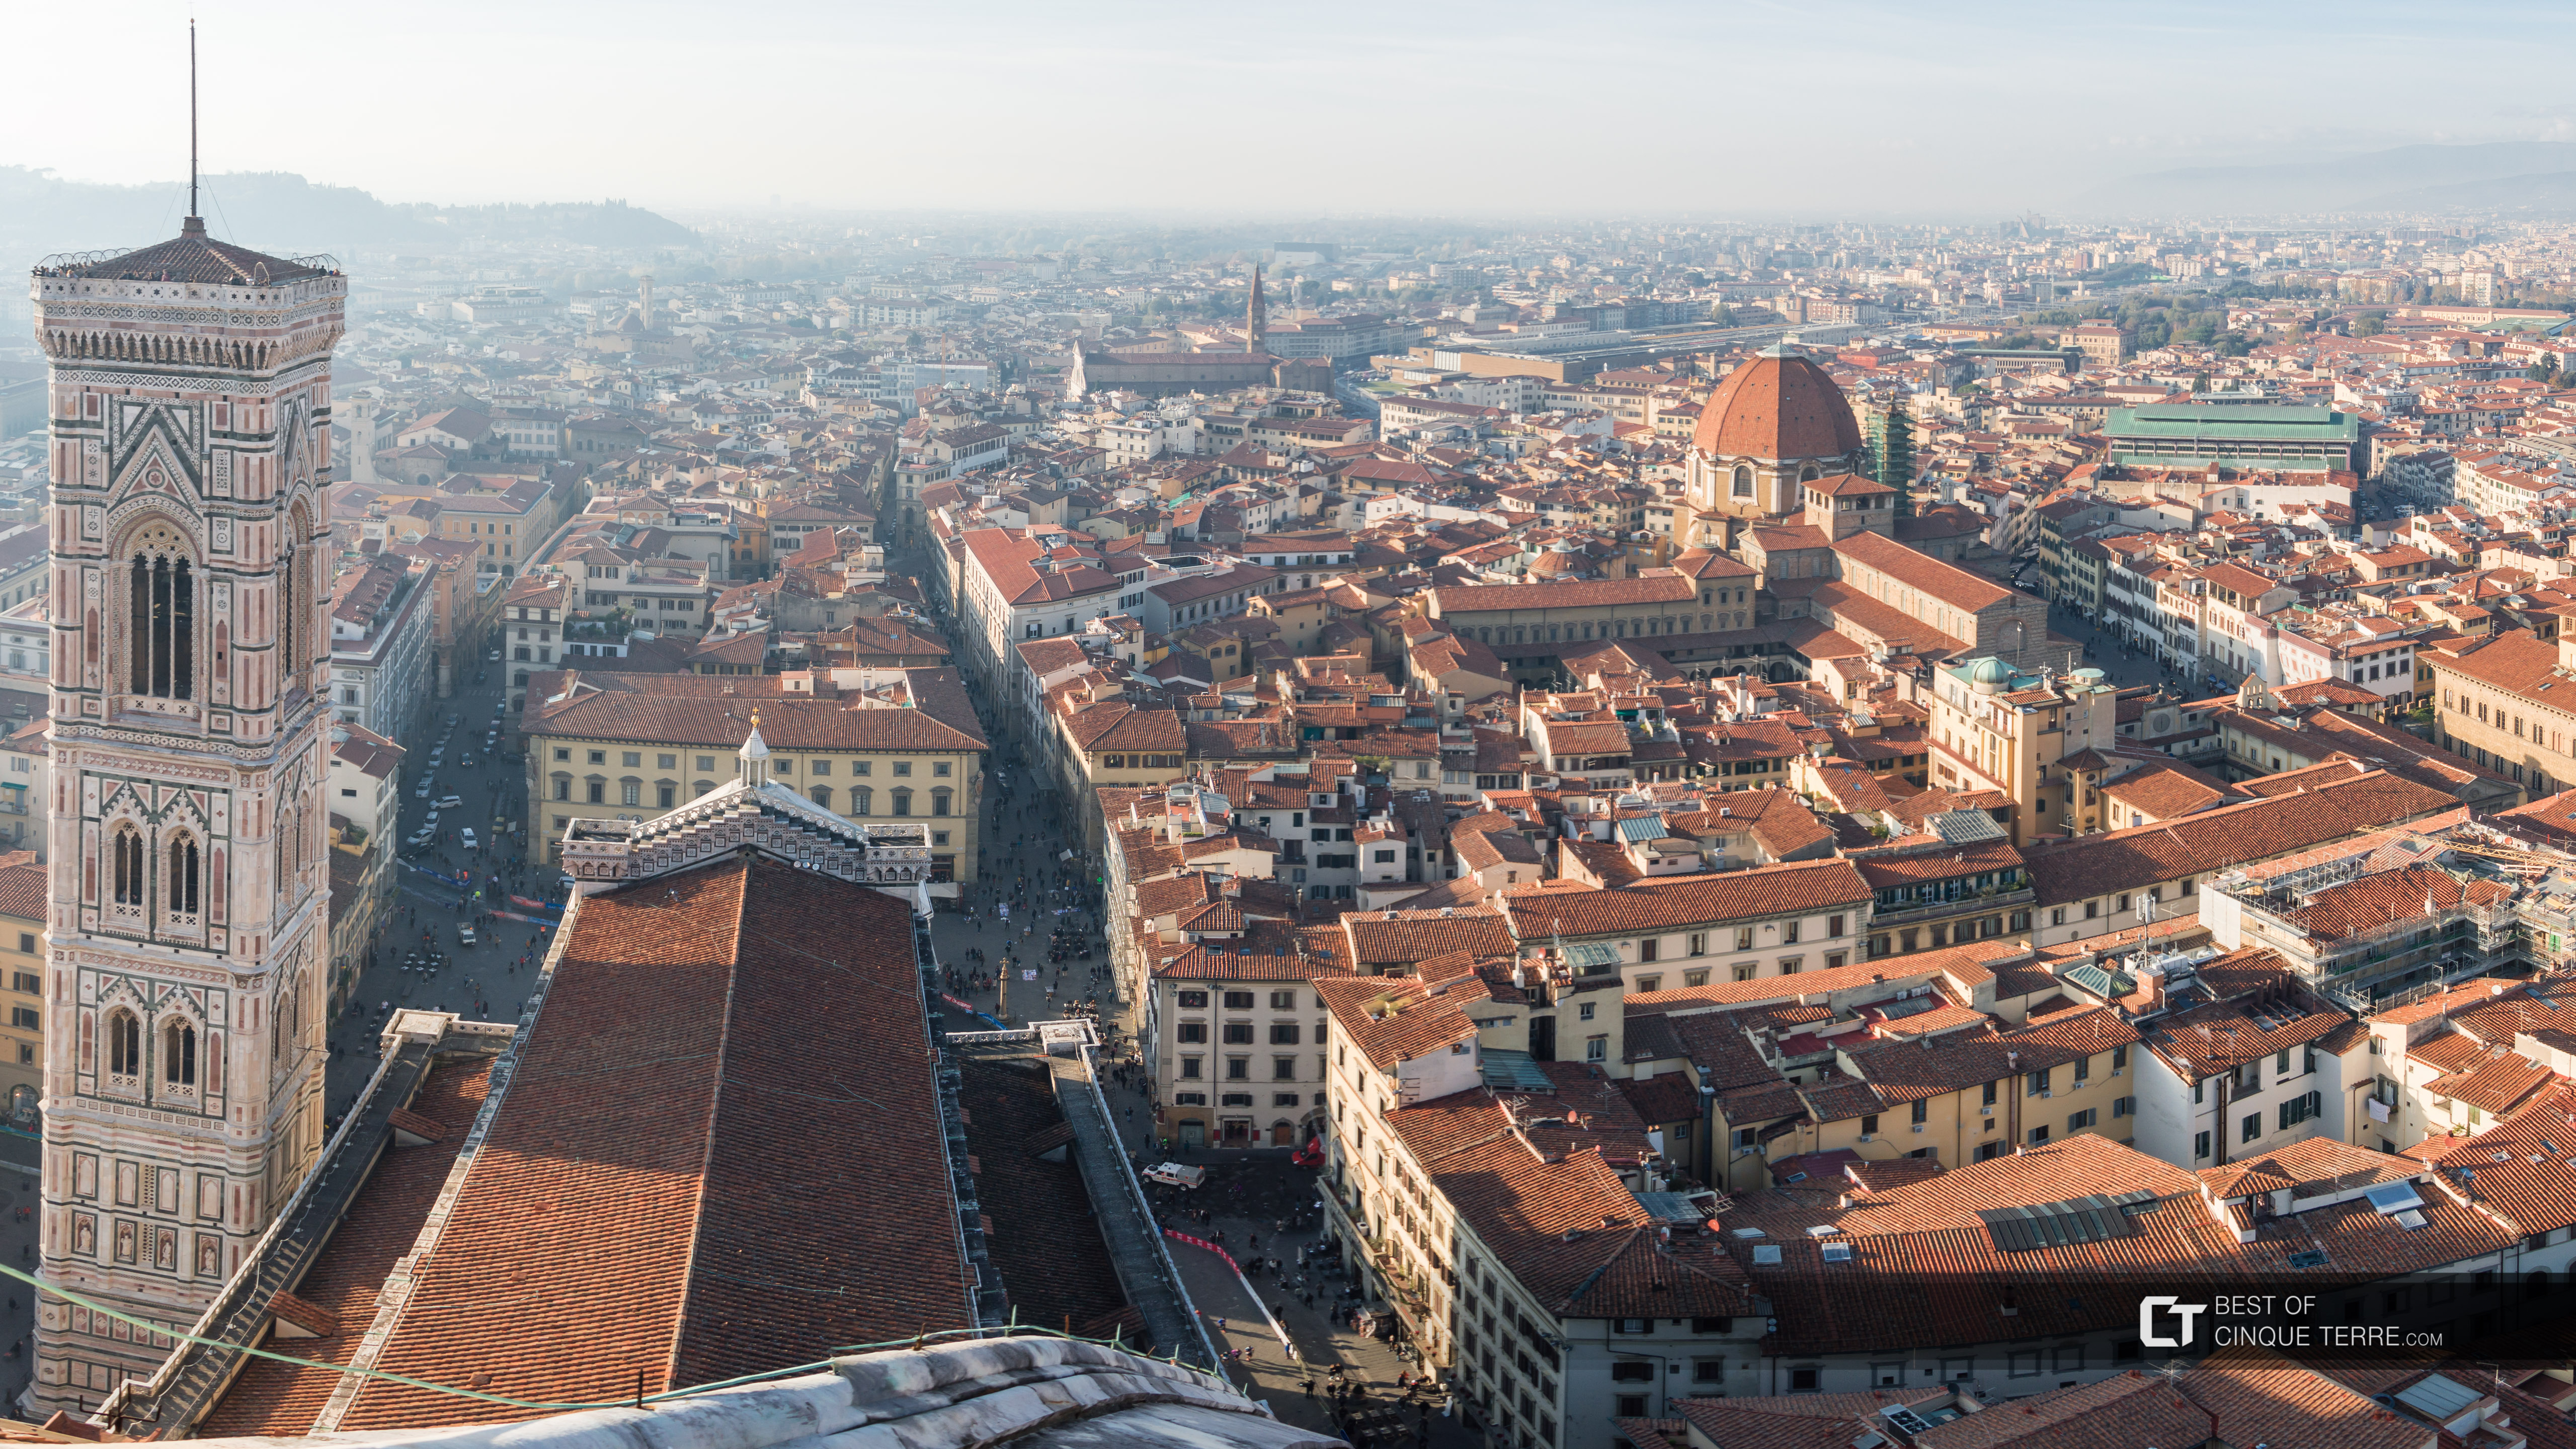 View from the dome of the Cathedral of Santa Maria del Fiore, Florence, Italy